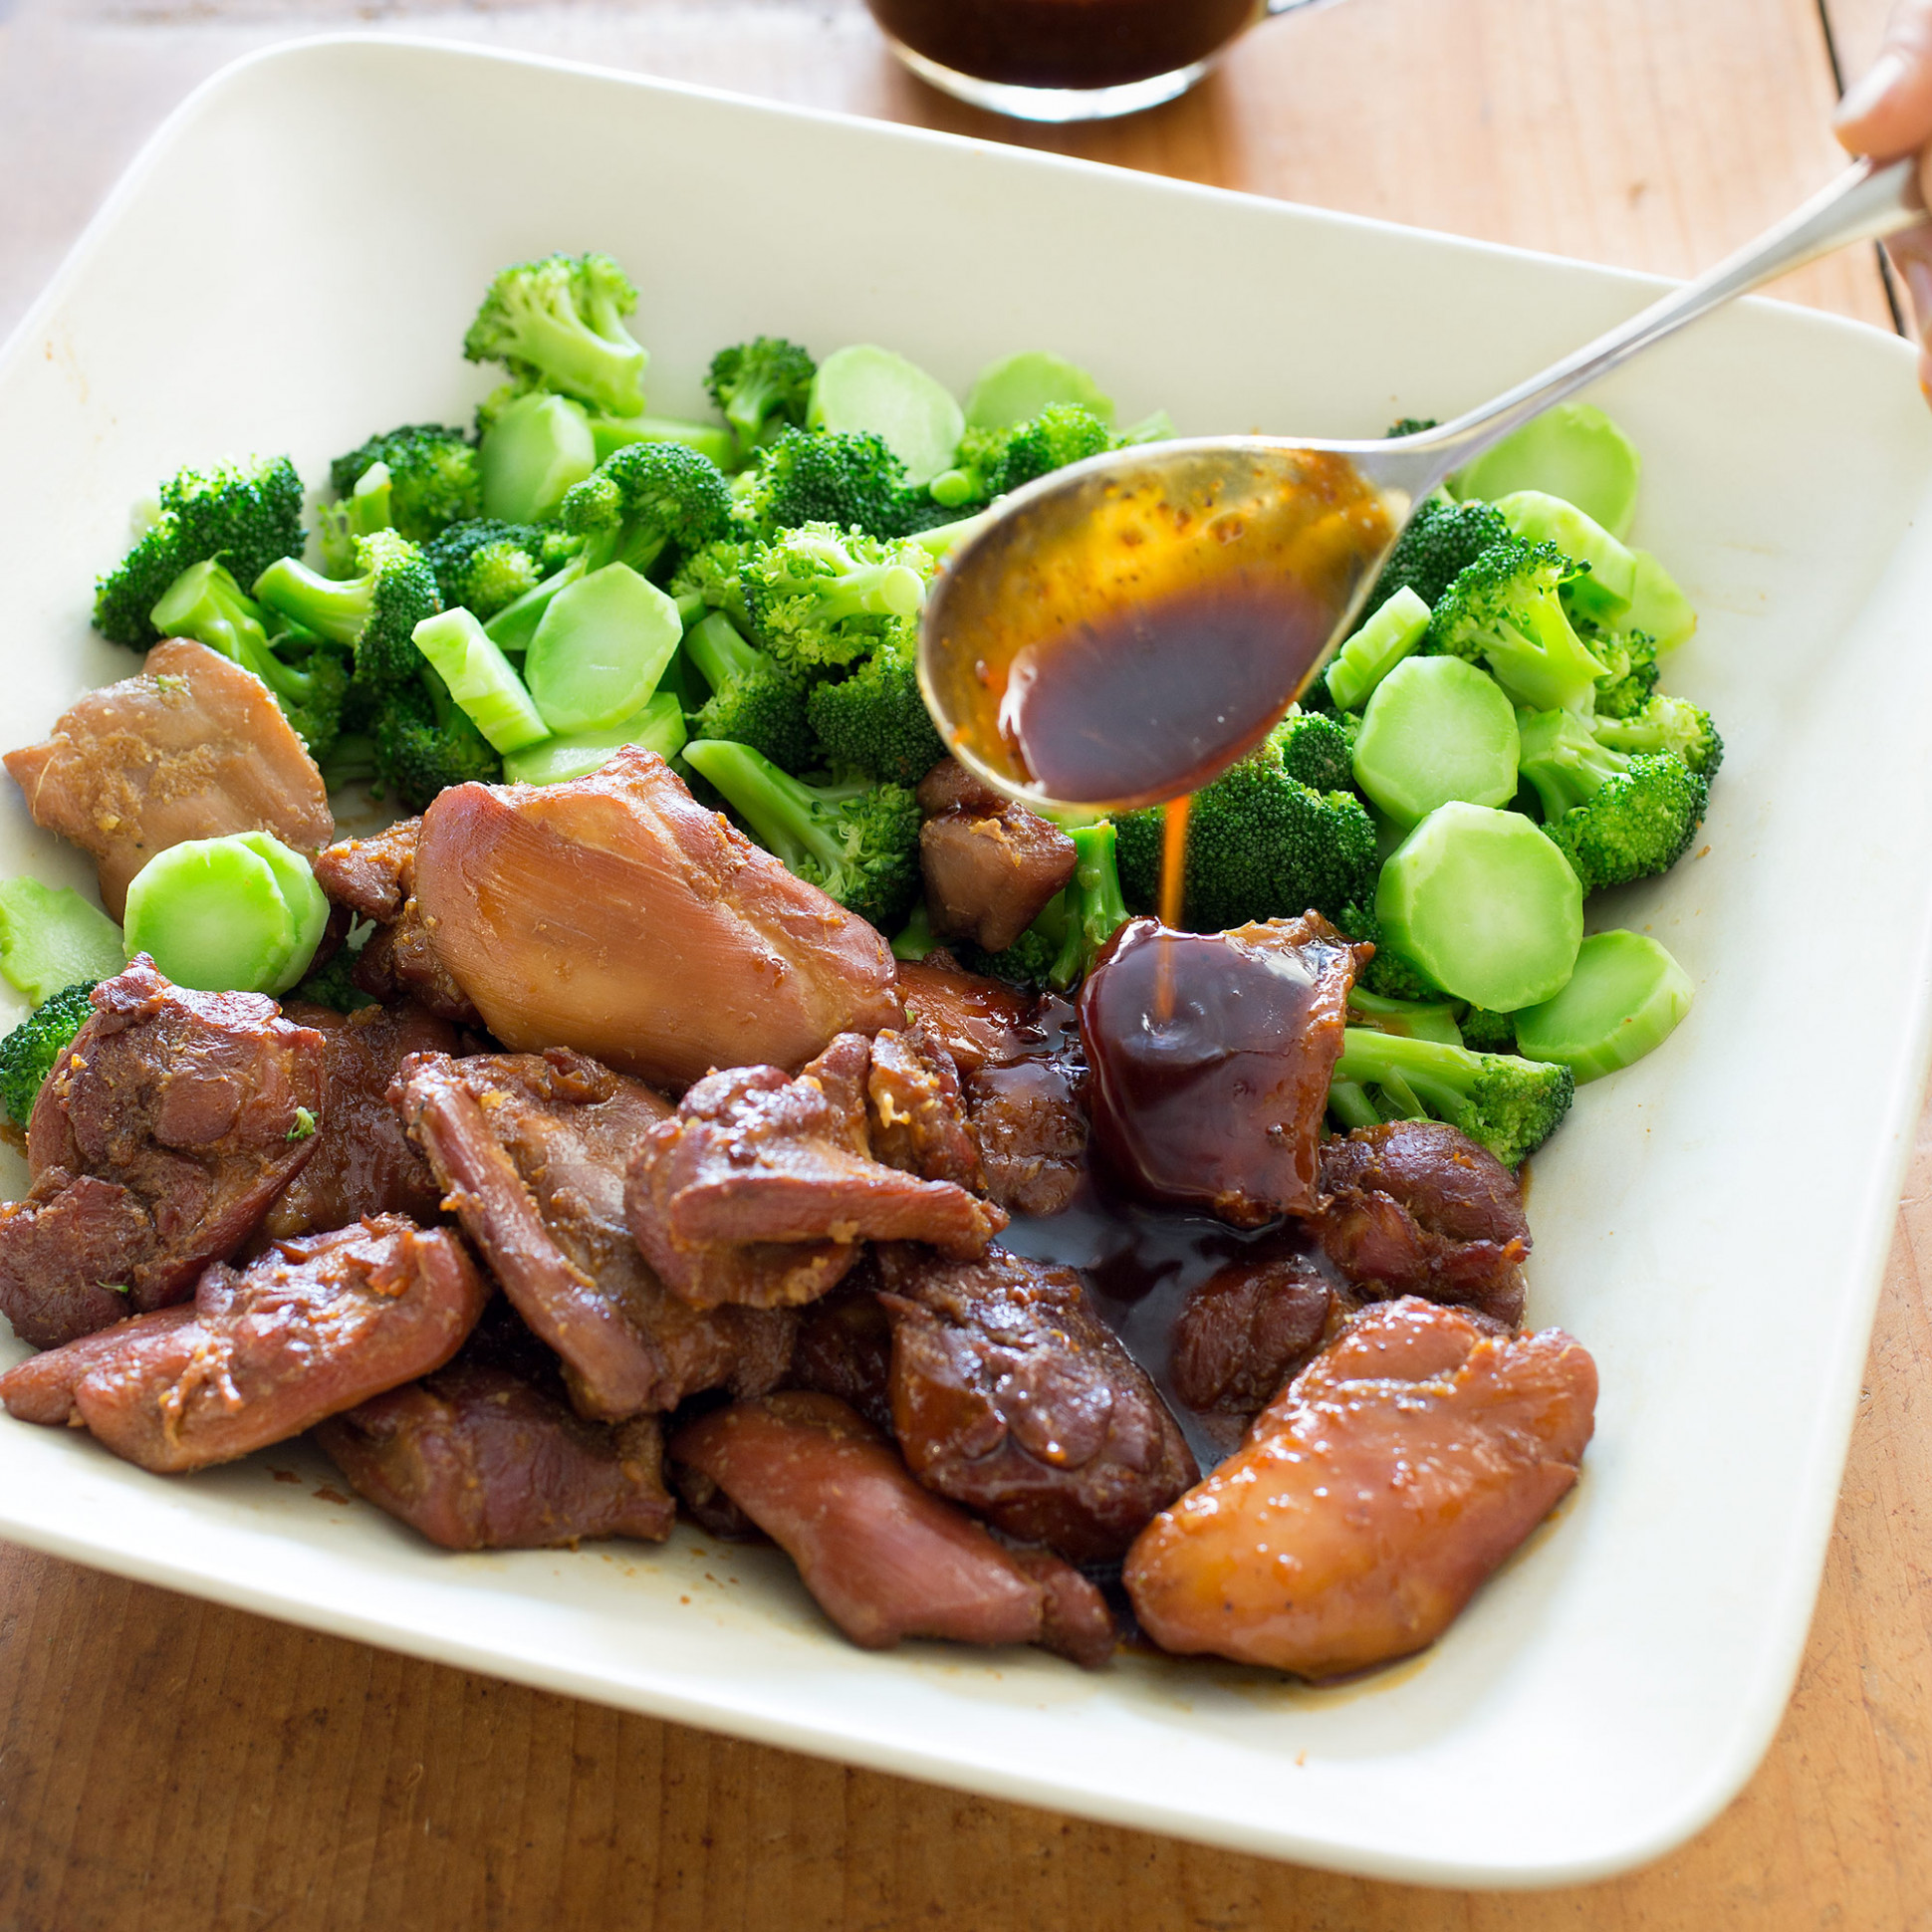 Vietnamese-Style Caramel Chicken With Broccoli